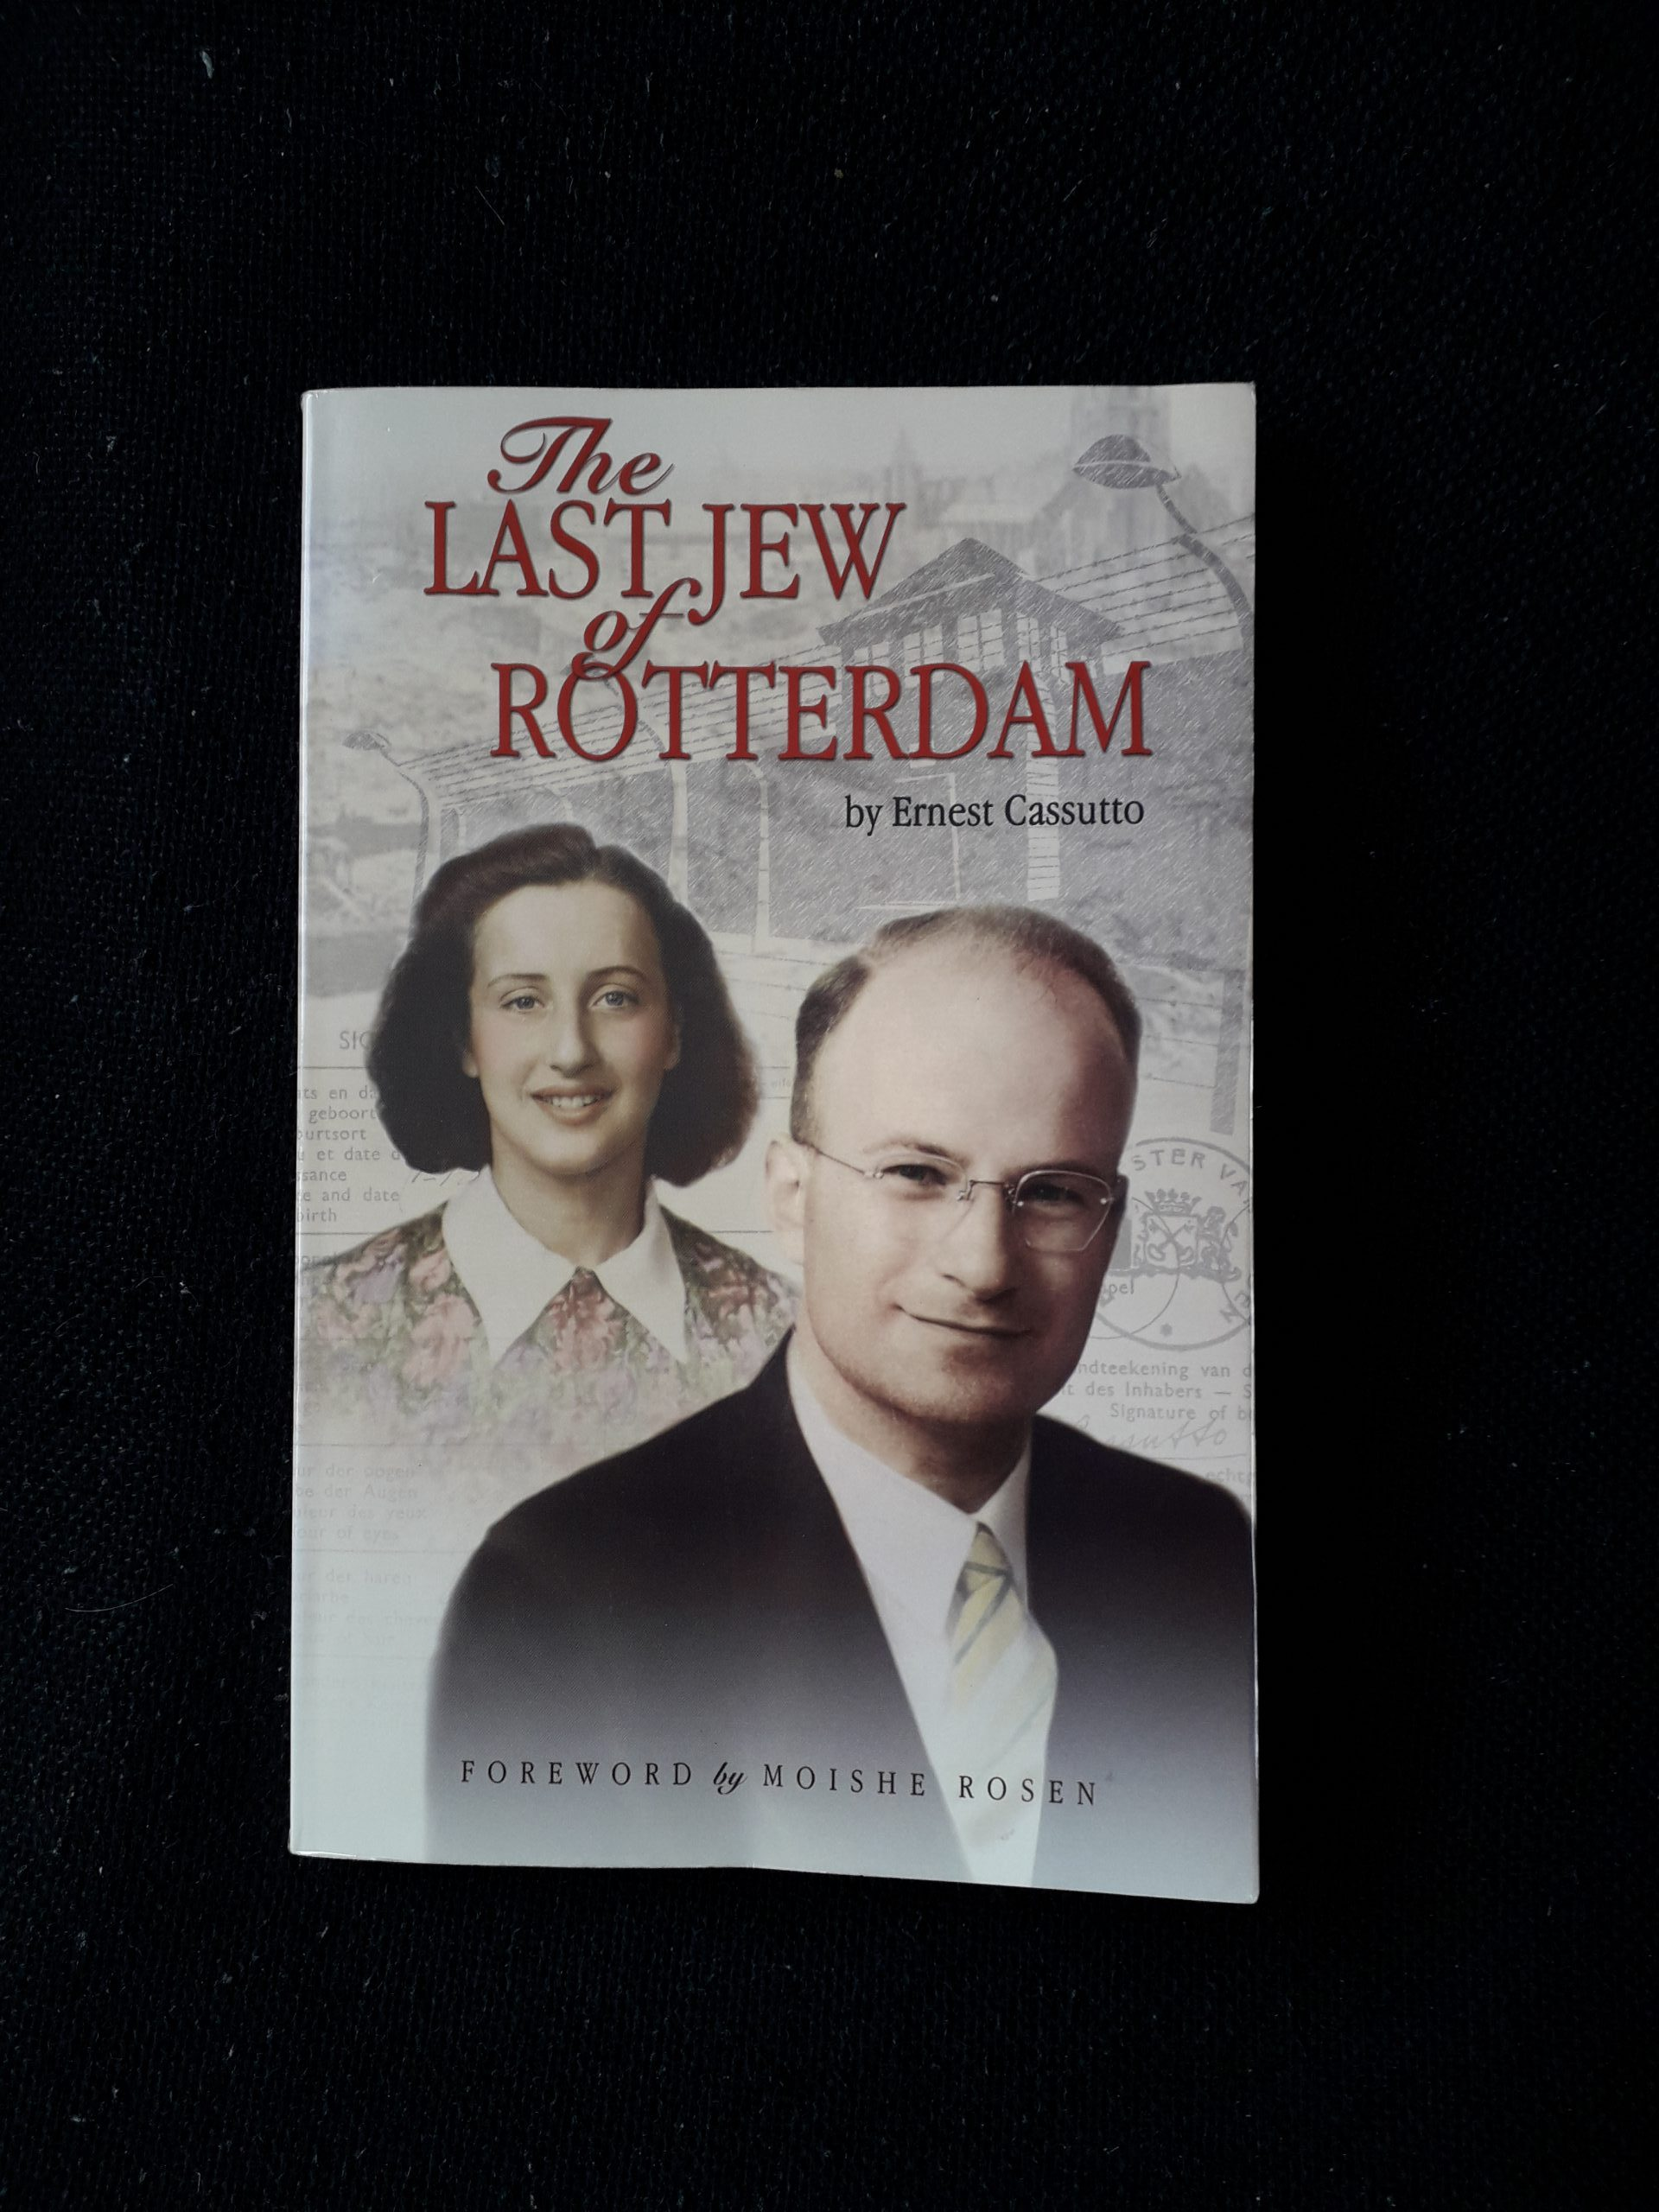 Review of 'The last Jew of Rotterdam' by Ernest Cassutto